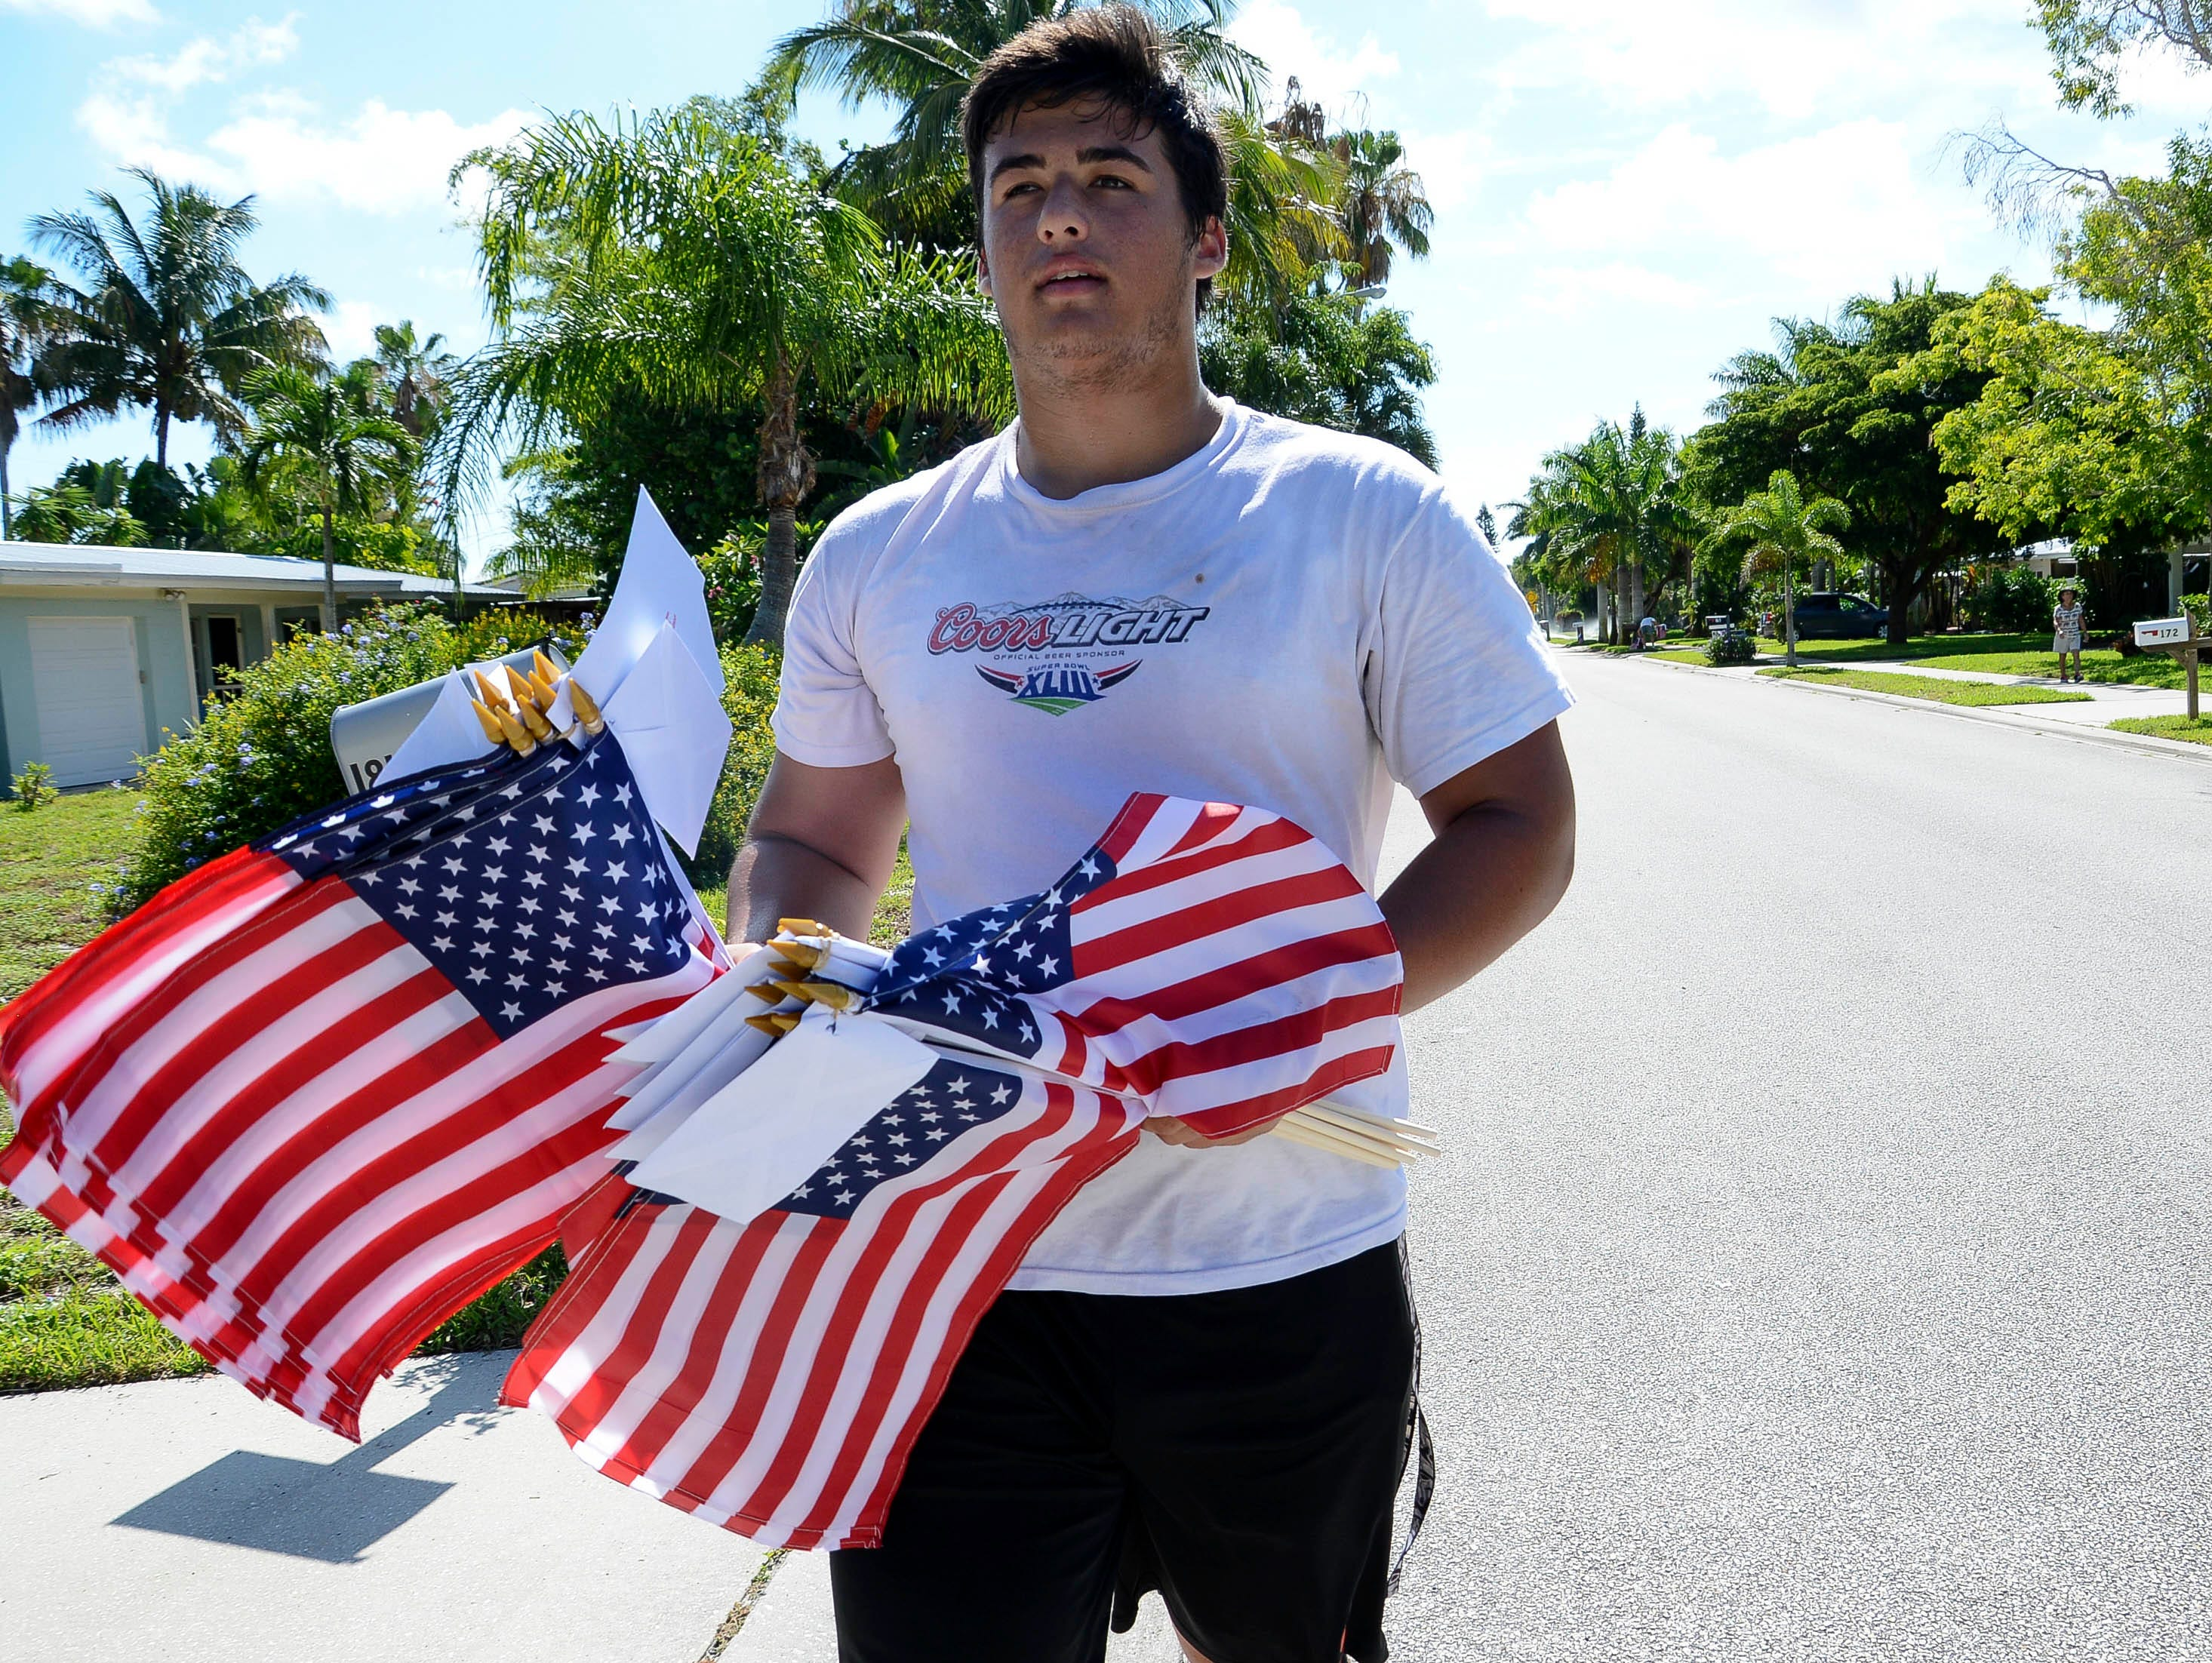 Alex Iervasi helps set out American flags Thursday morning in Satellite Beach. Students from Satellite High's football and ROTC squads help distribute American flags as part of a fundraiser for the school.